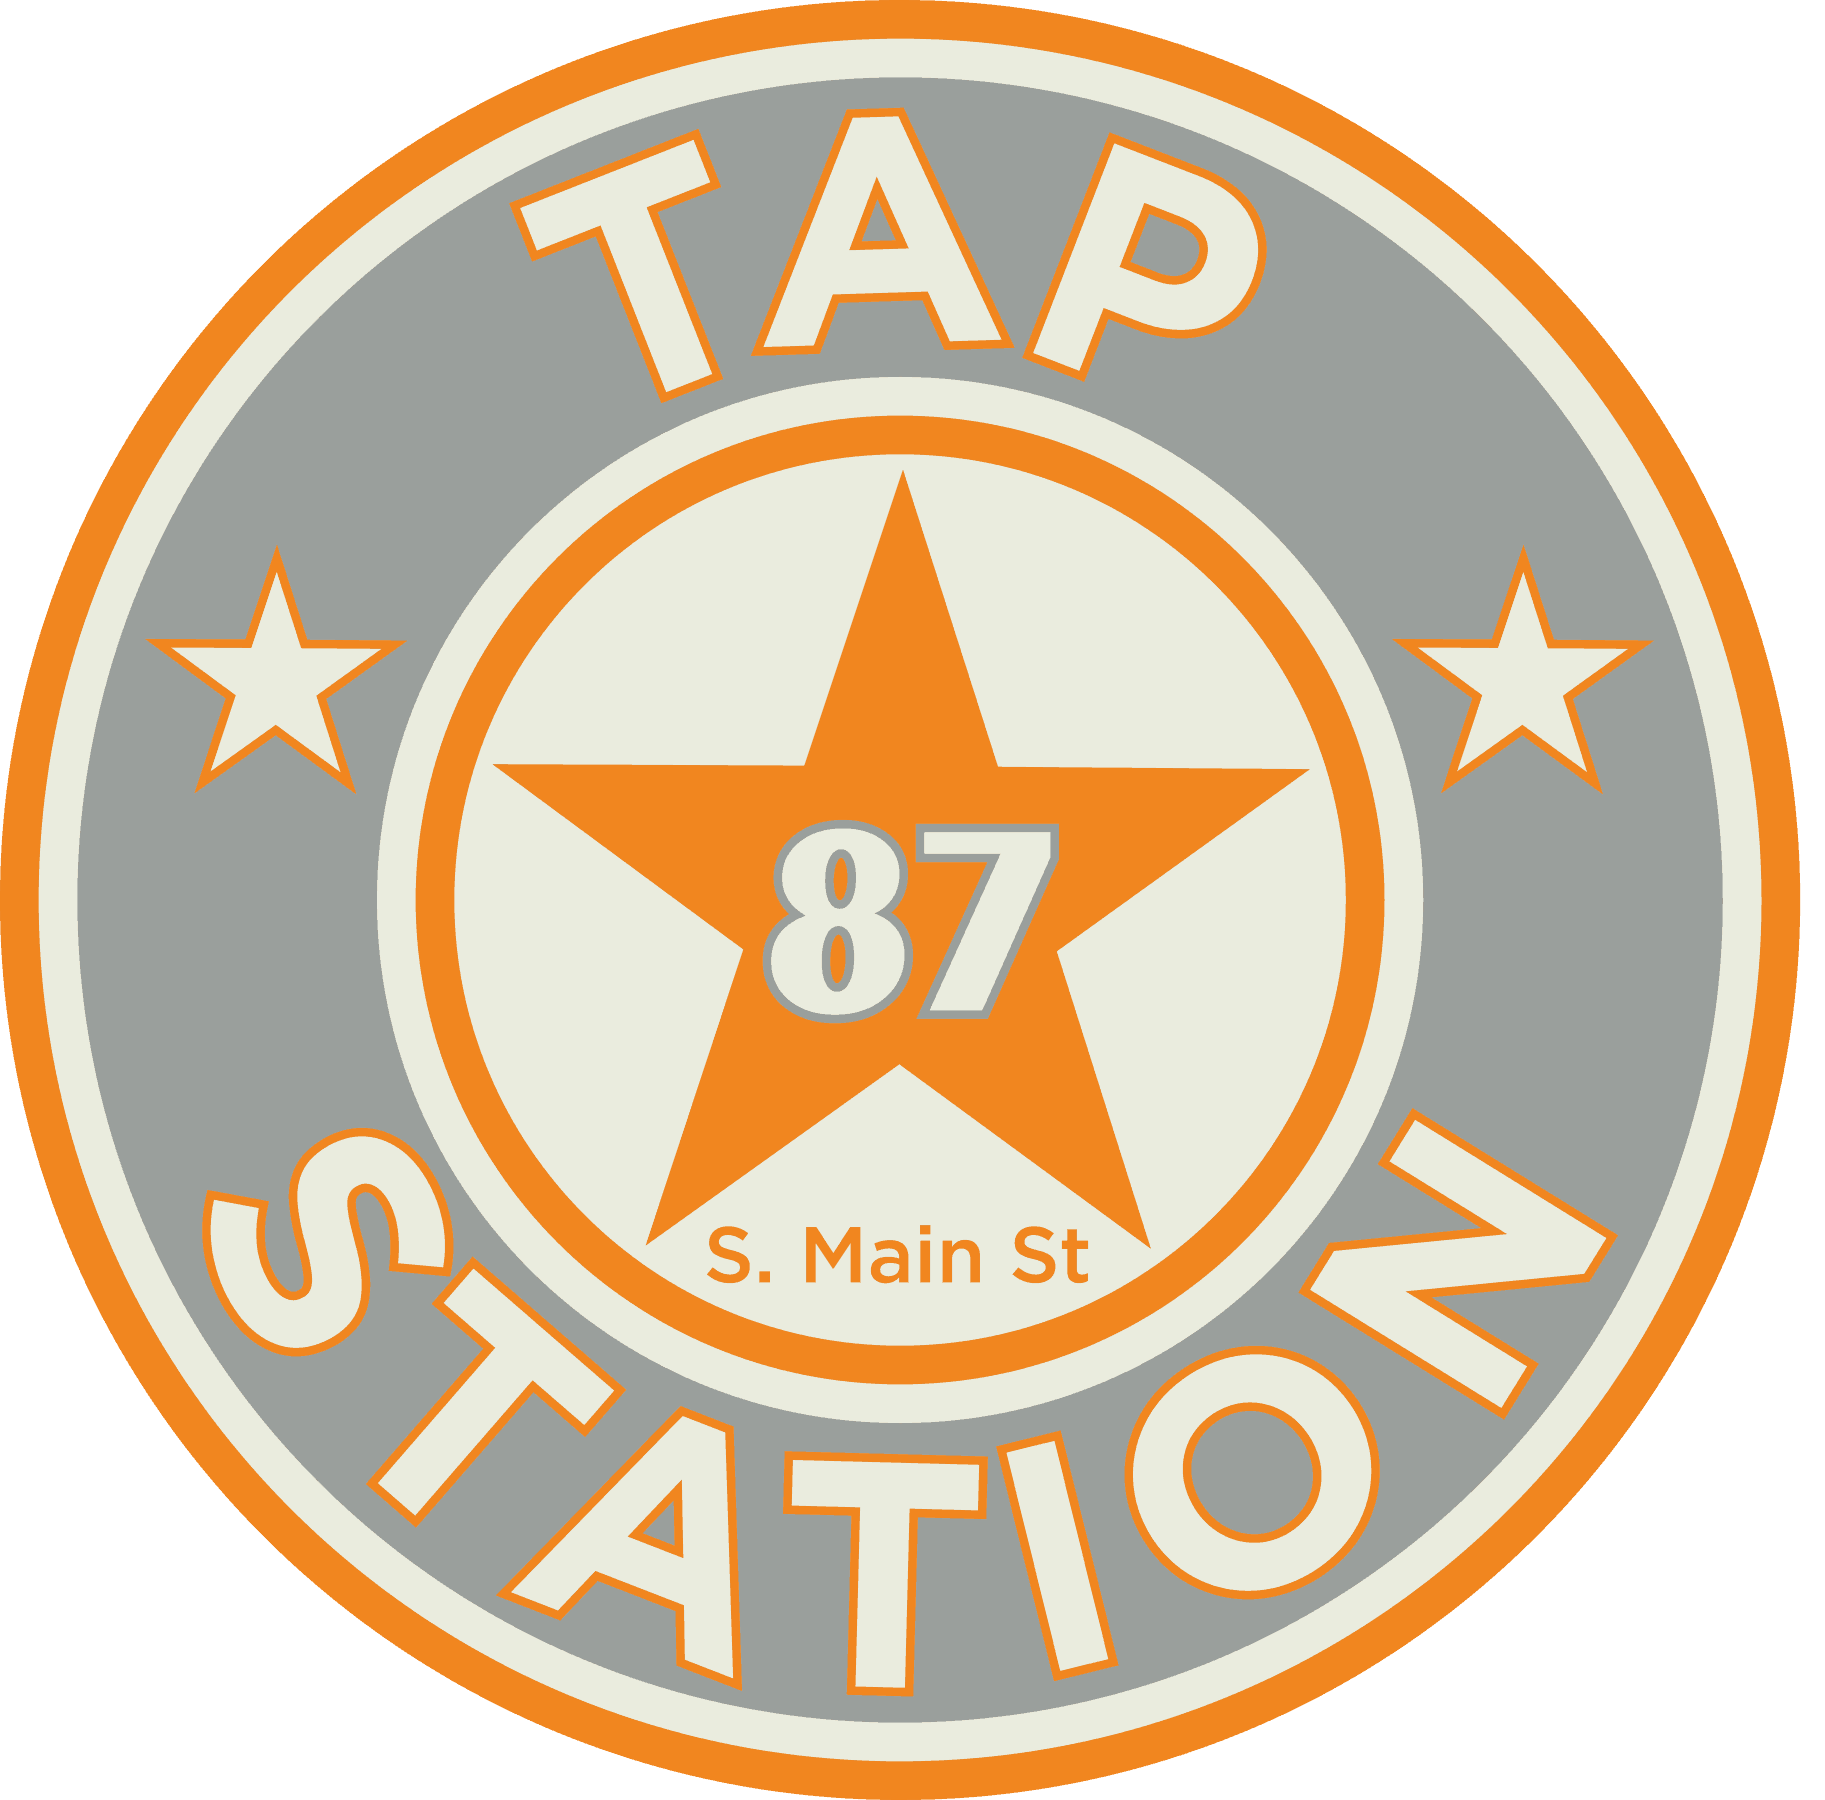 The Tap Station